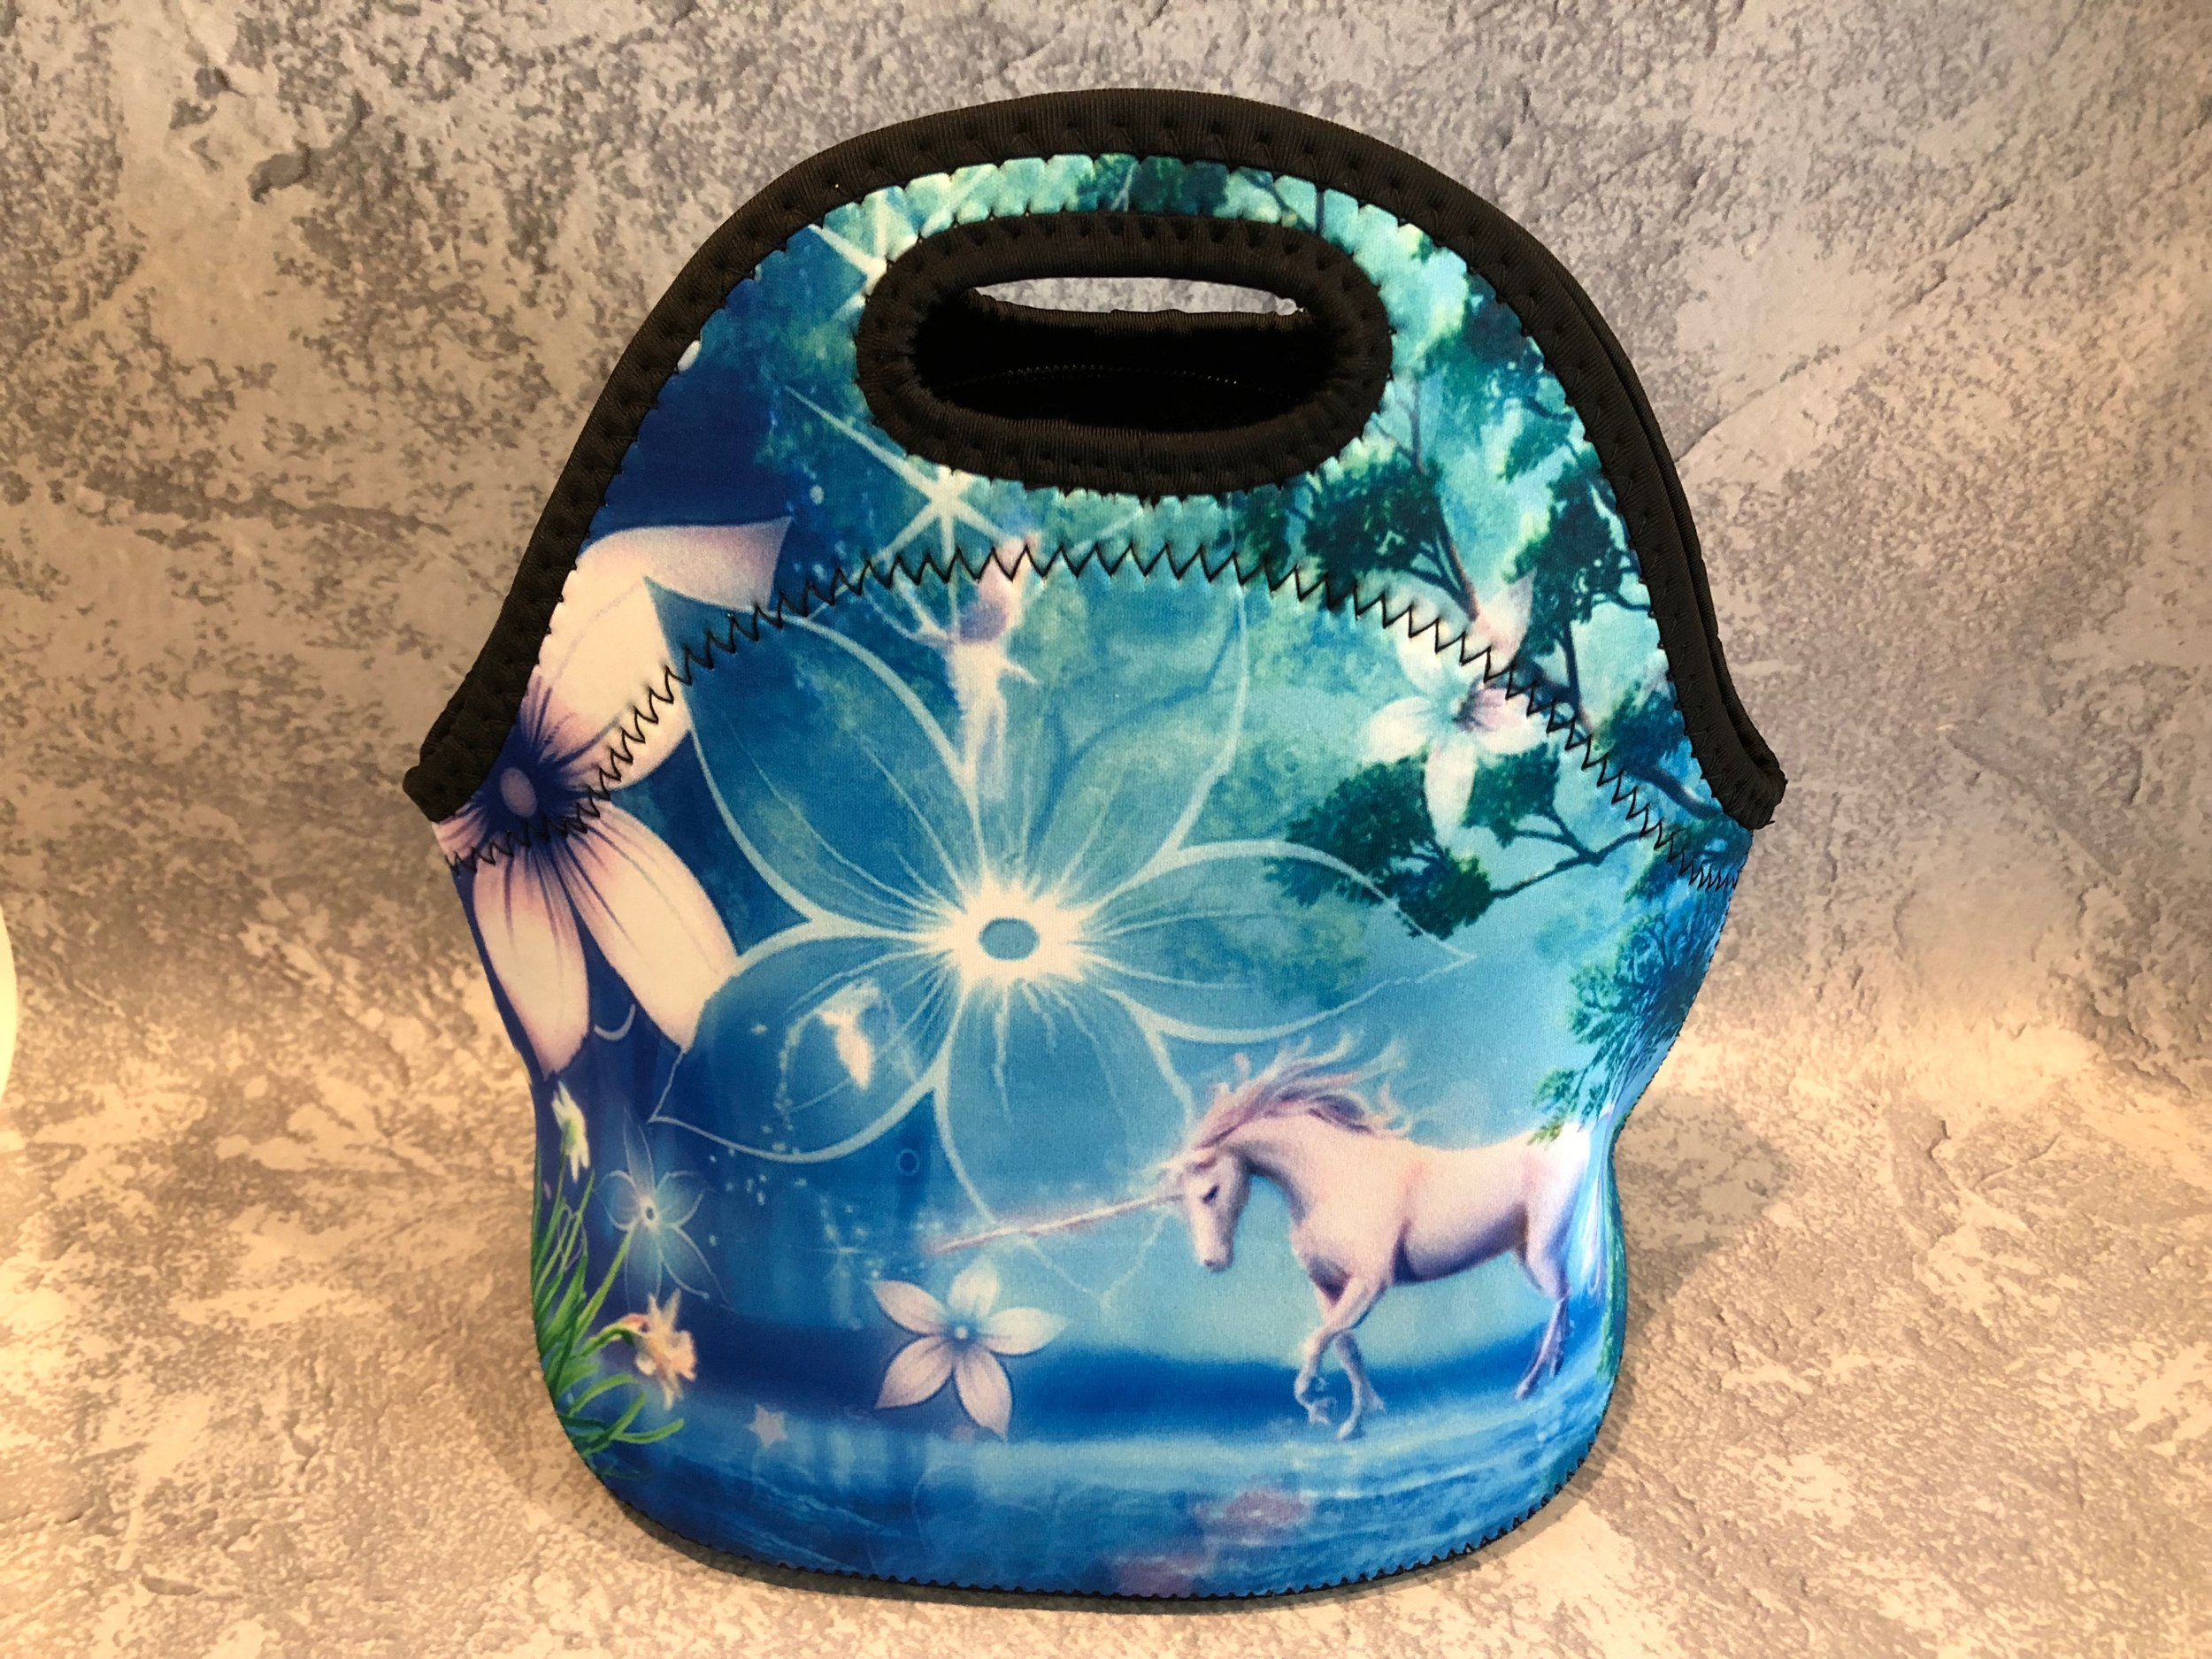 Keto and Low Carb Lunch Bag Unicorn Back to School